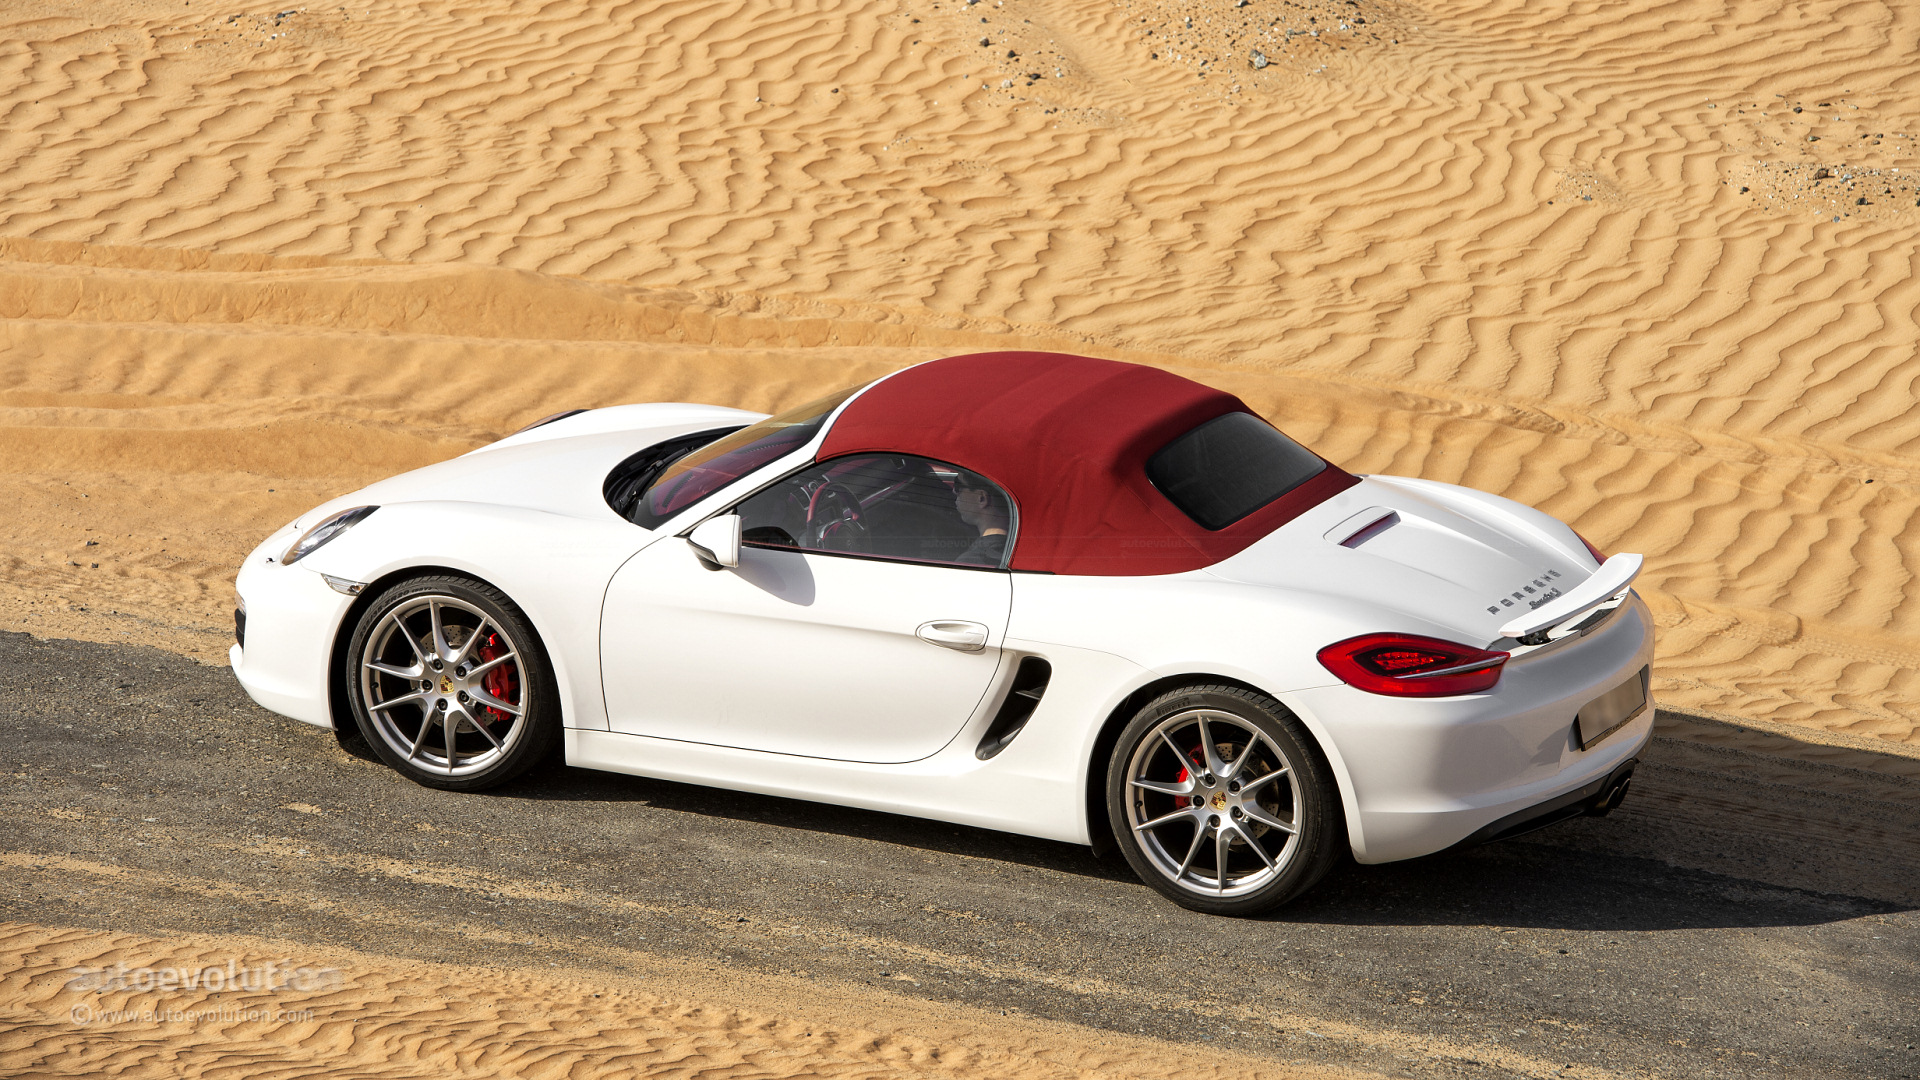 porsche recall campaign the hood latch is the culprit this time